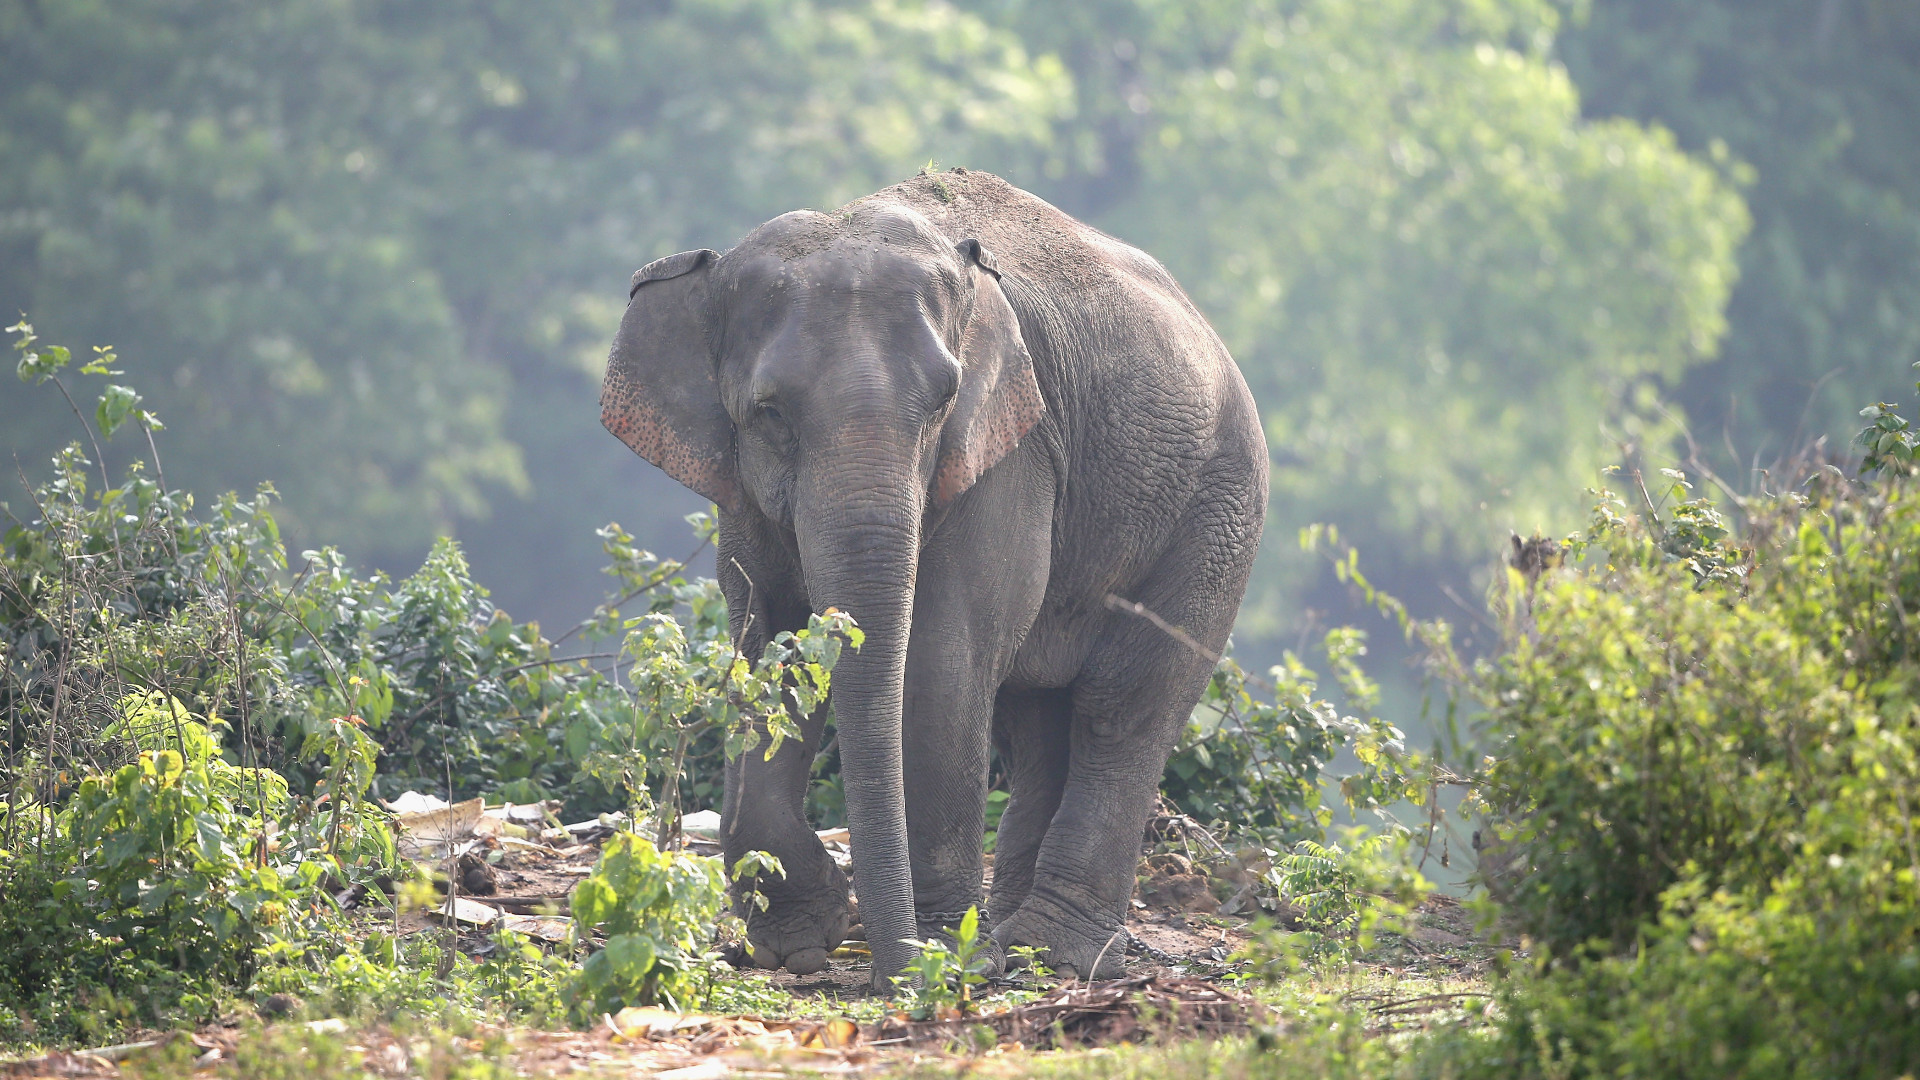 An elephant in India